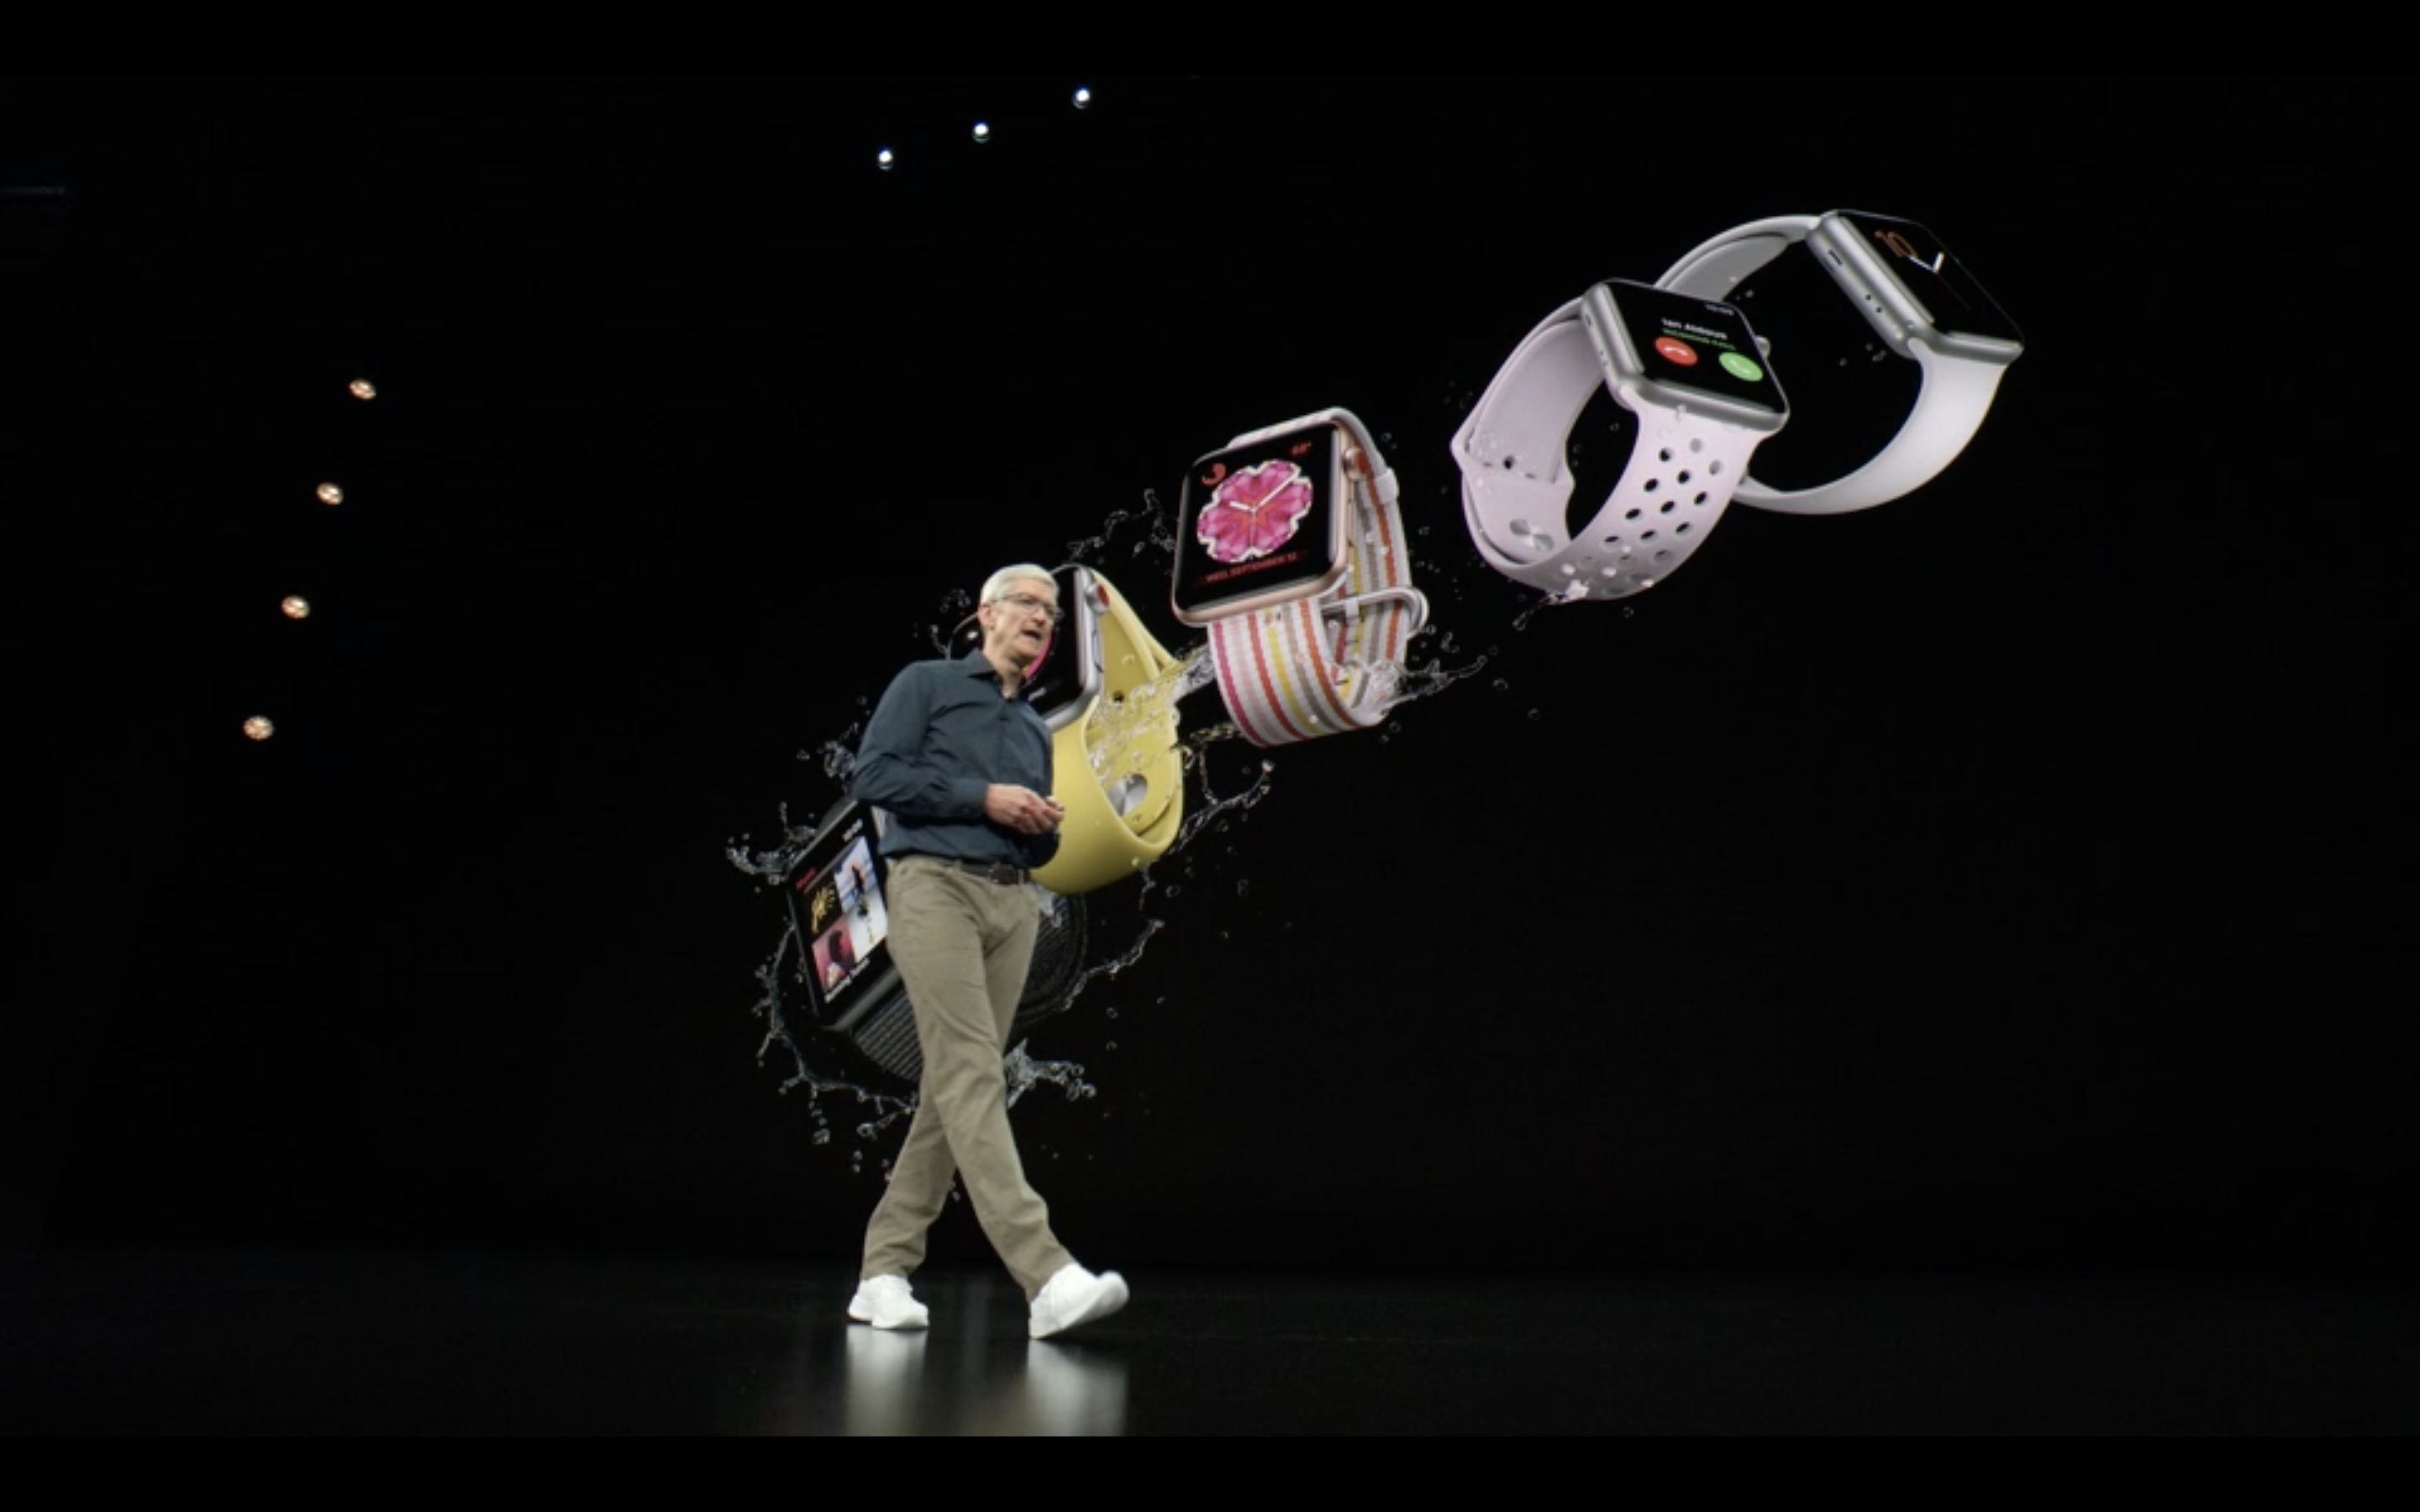 Here S All The Milestones Tim Cook Boasted About At The 2018 Apple Event